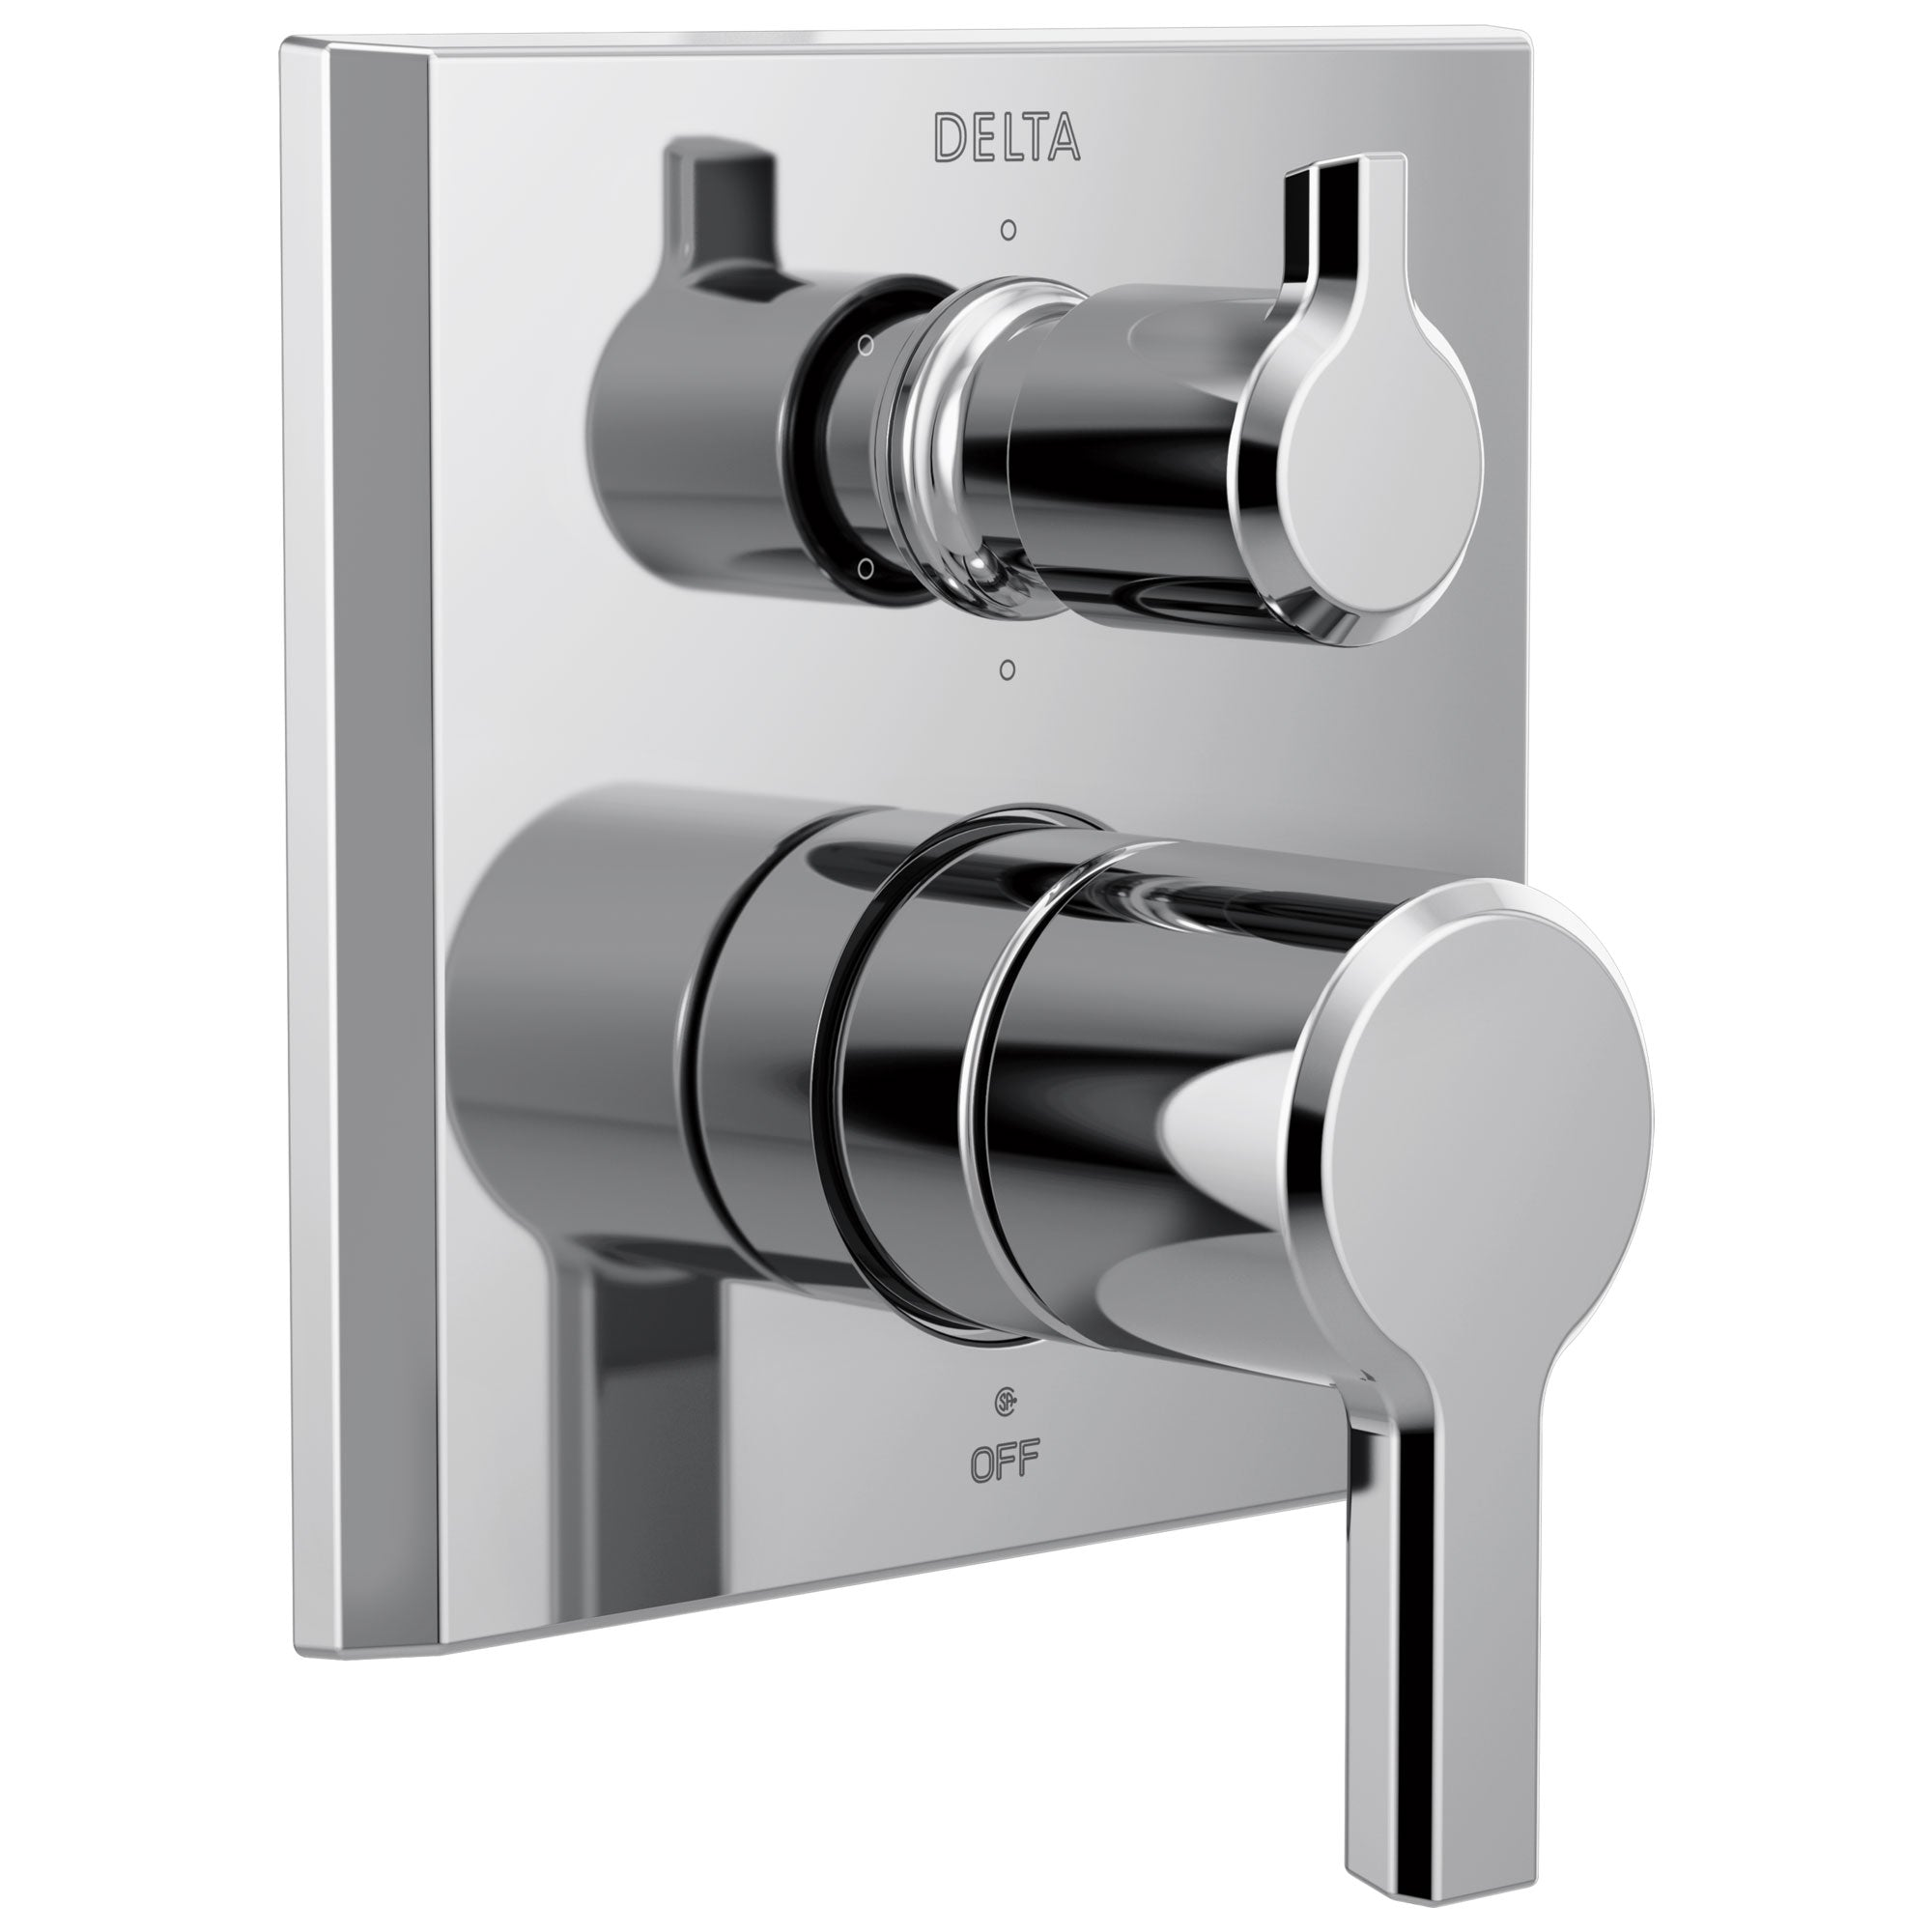 Delta Pivotal Chrome Finish 14 Series Integrated 6 Function Diverter Shower Control Trim Kit (Requires Valve) DT24999